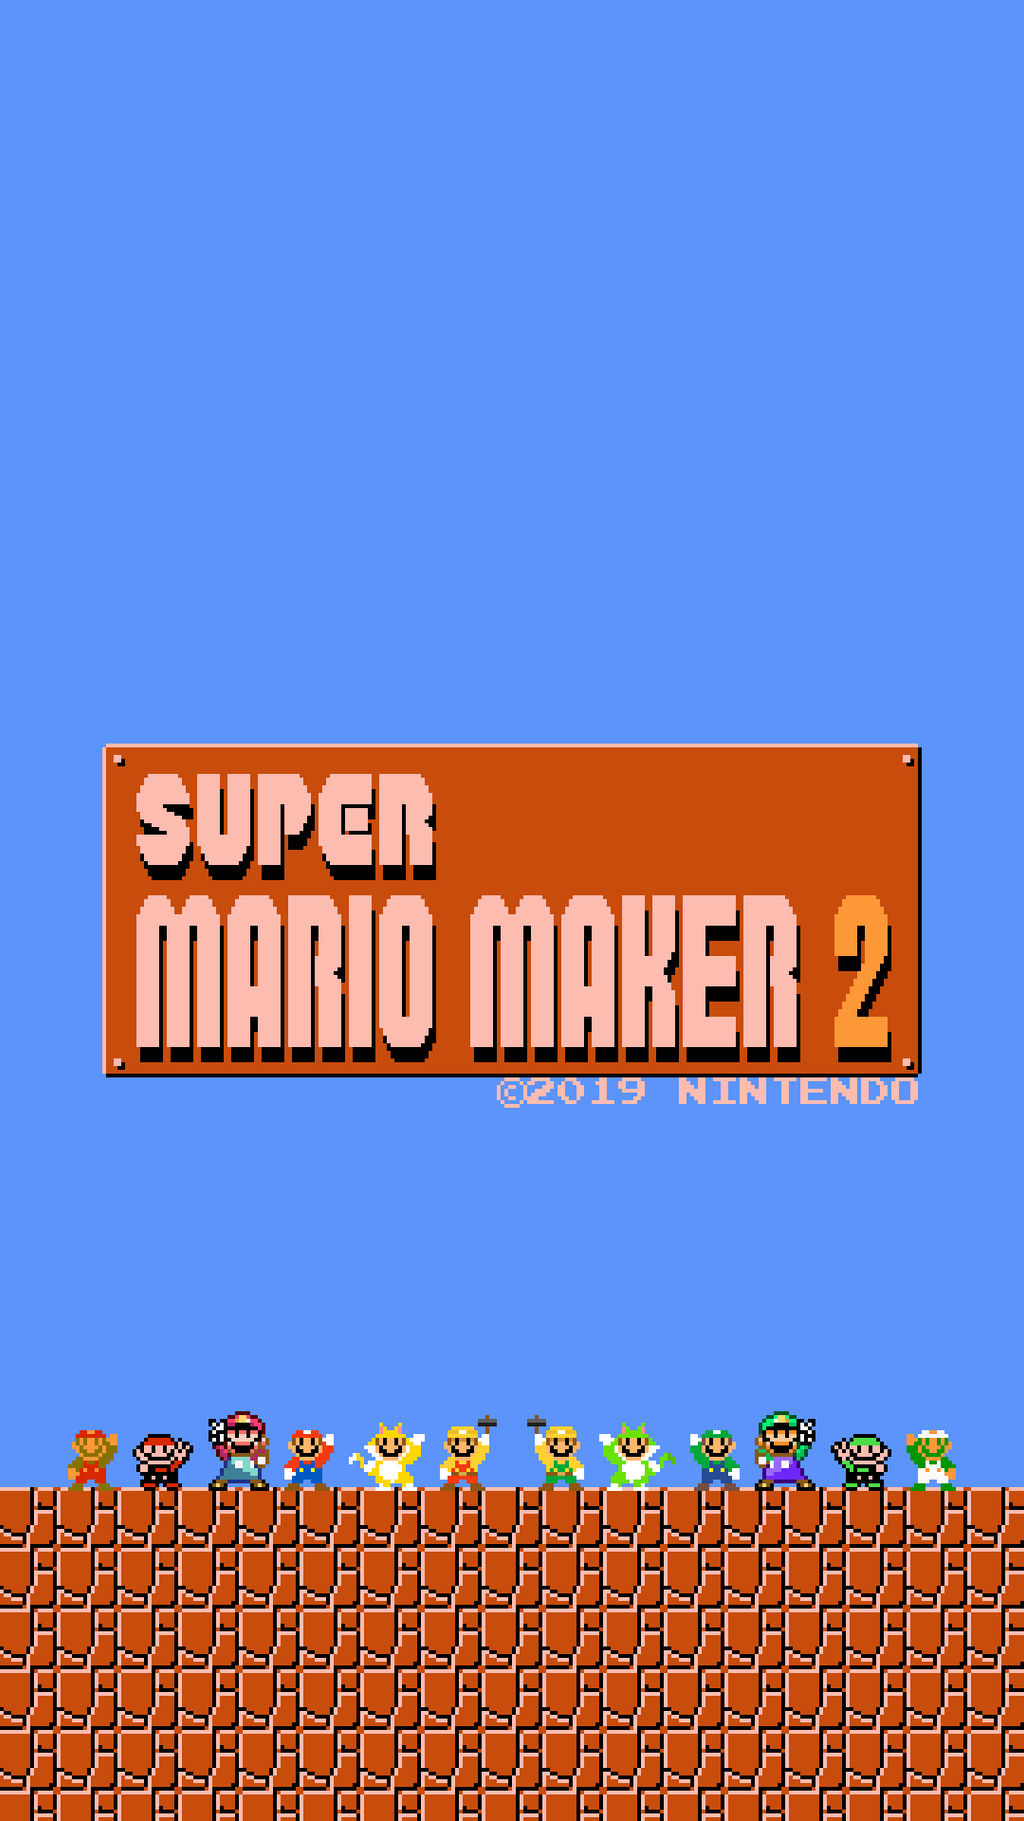 Super Mario Maker 2 Retro Mobile Wallpaper By Thewolfbunny On